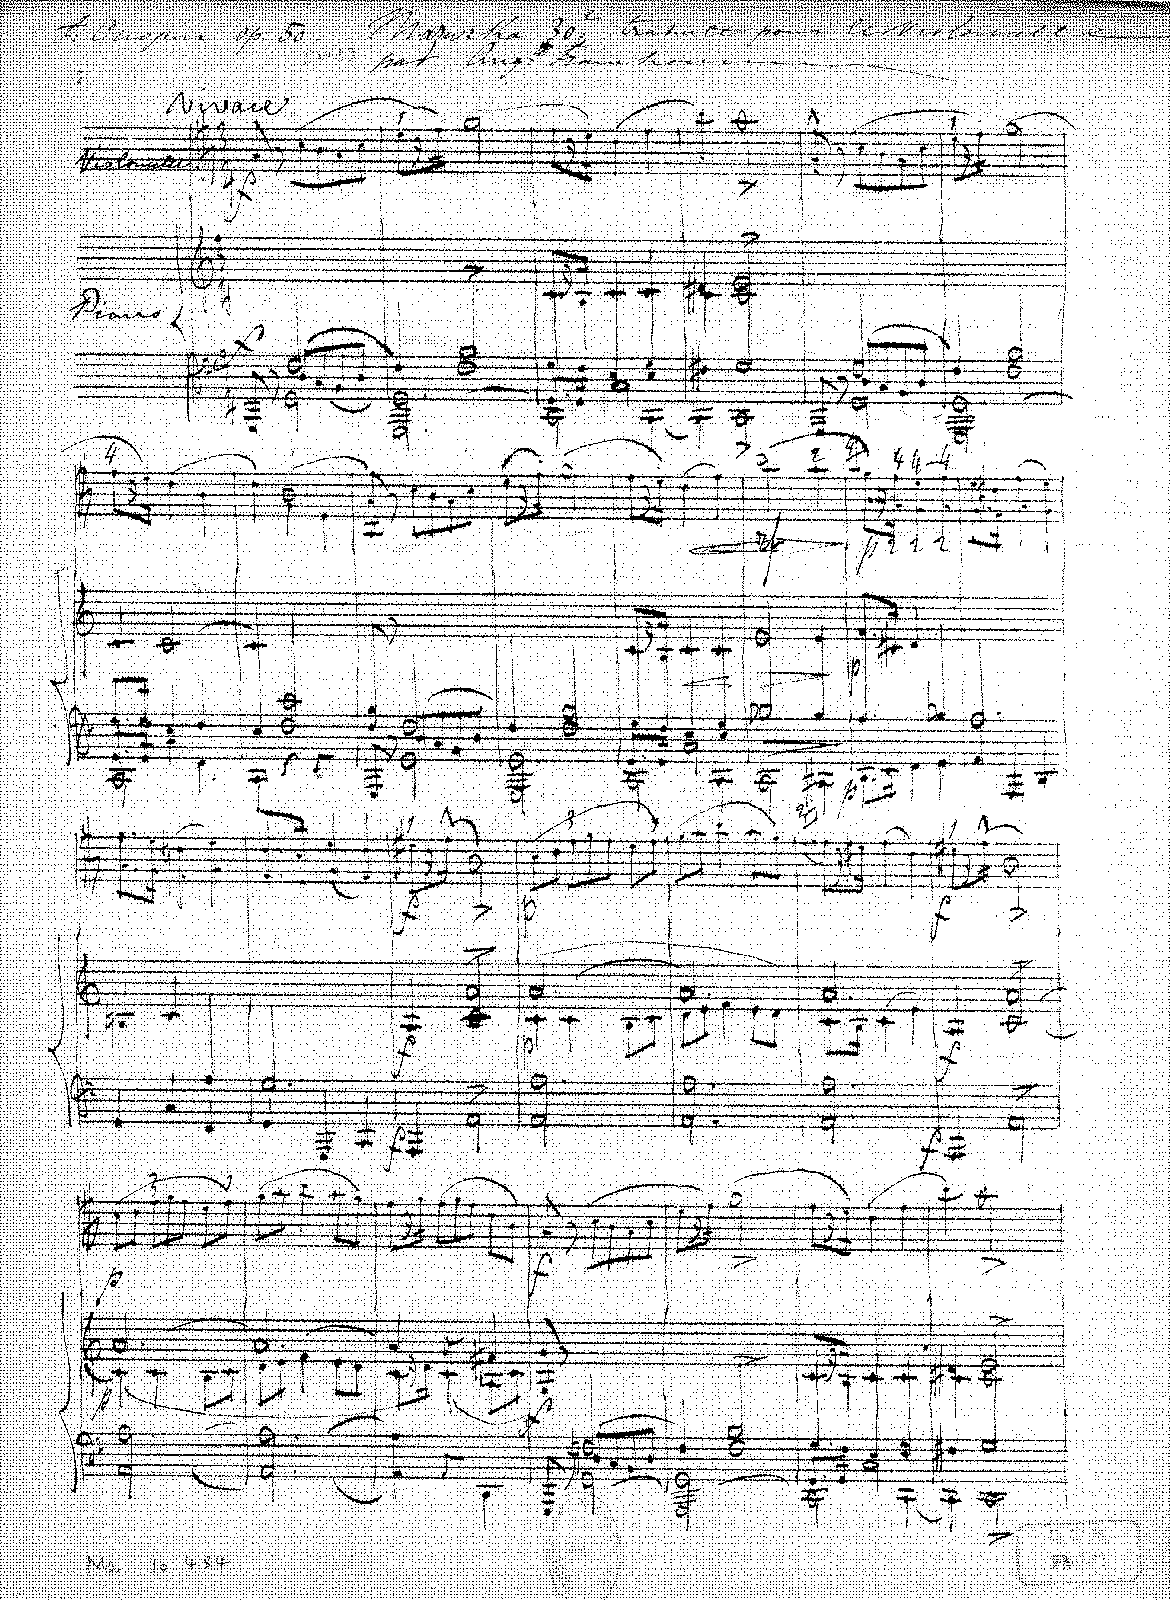 PMLP02277-Chopin - Mazurka No1 Op50 (Franchomme) for cello and piano manuscript.pdf